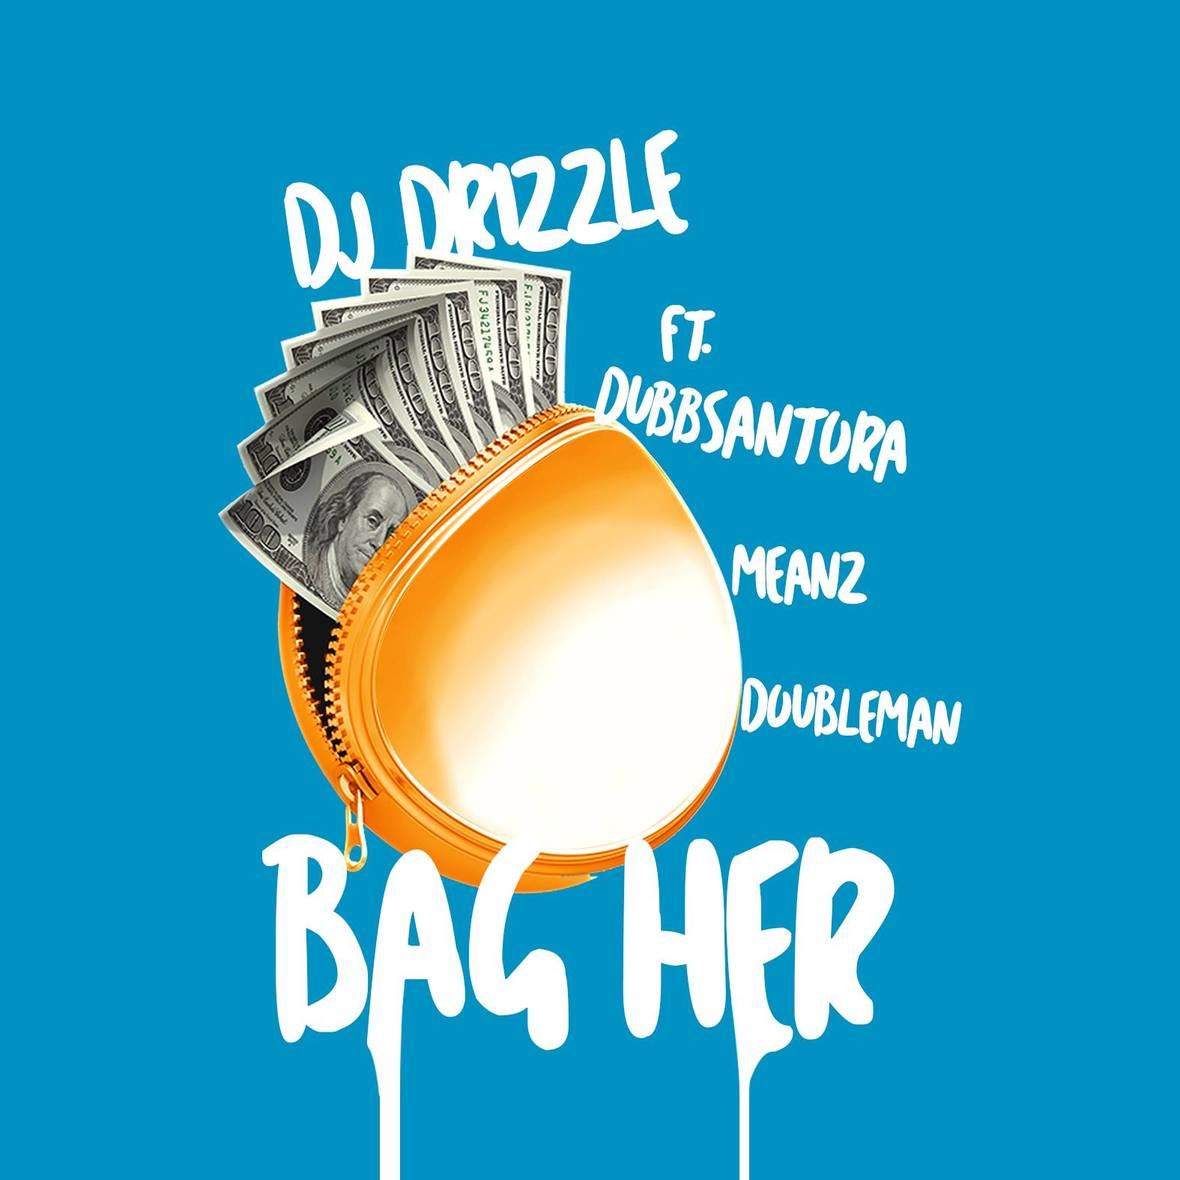 Dj Drizzle- Bag Her Cover